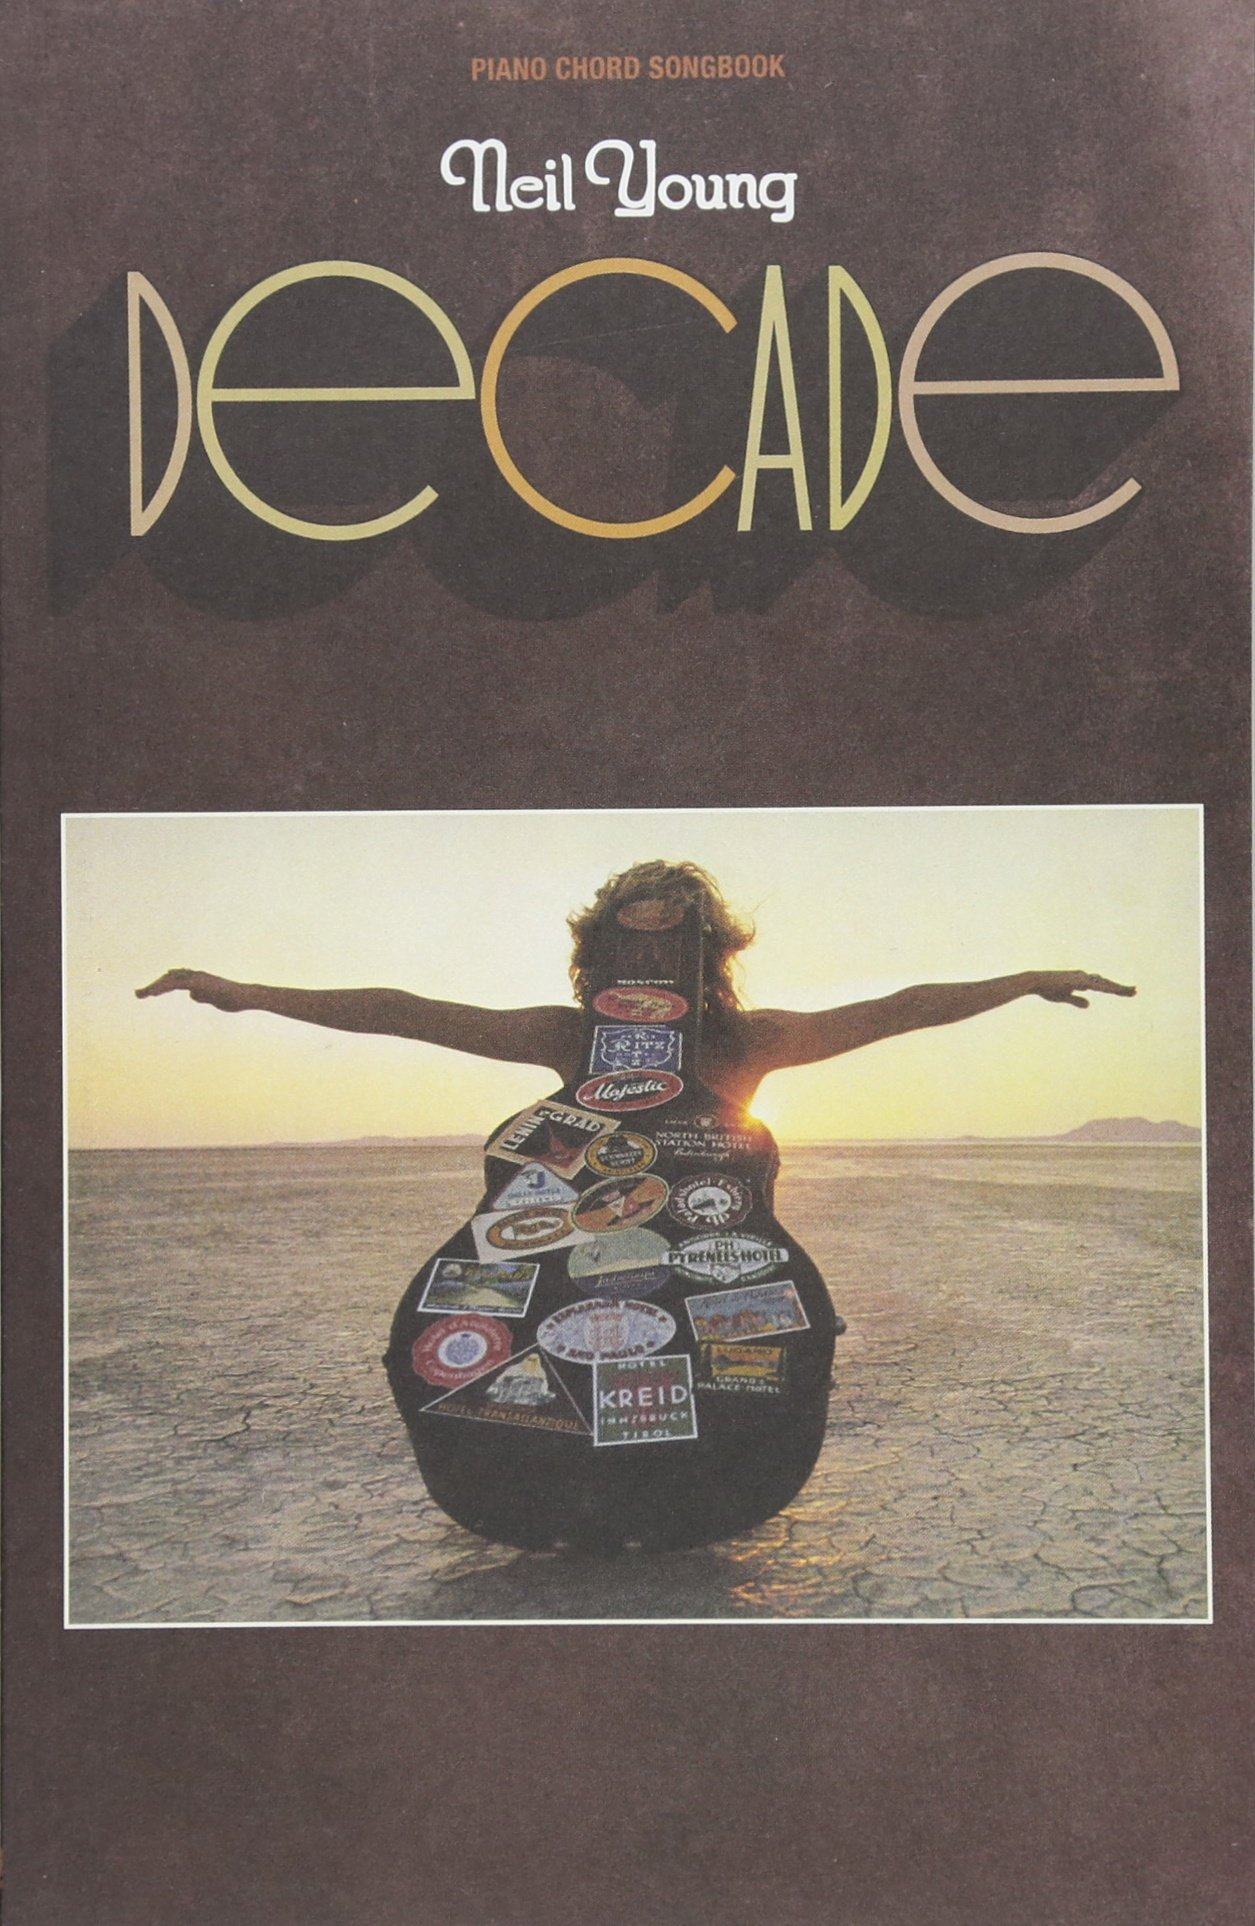 Neil Young Decade Piano Chord Songbook Neil Young